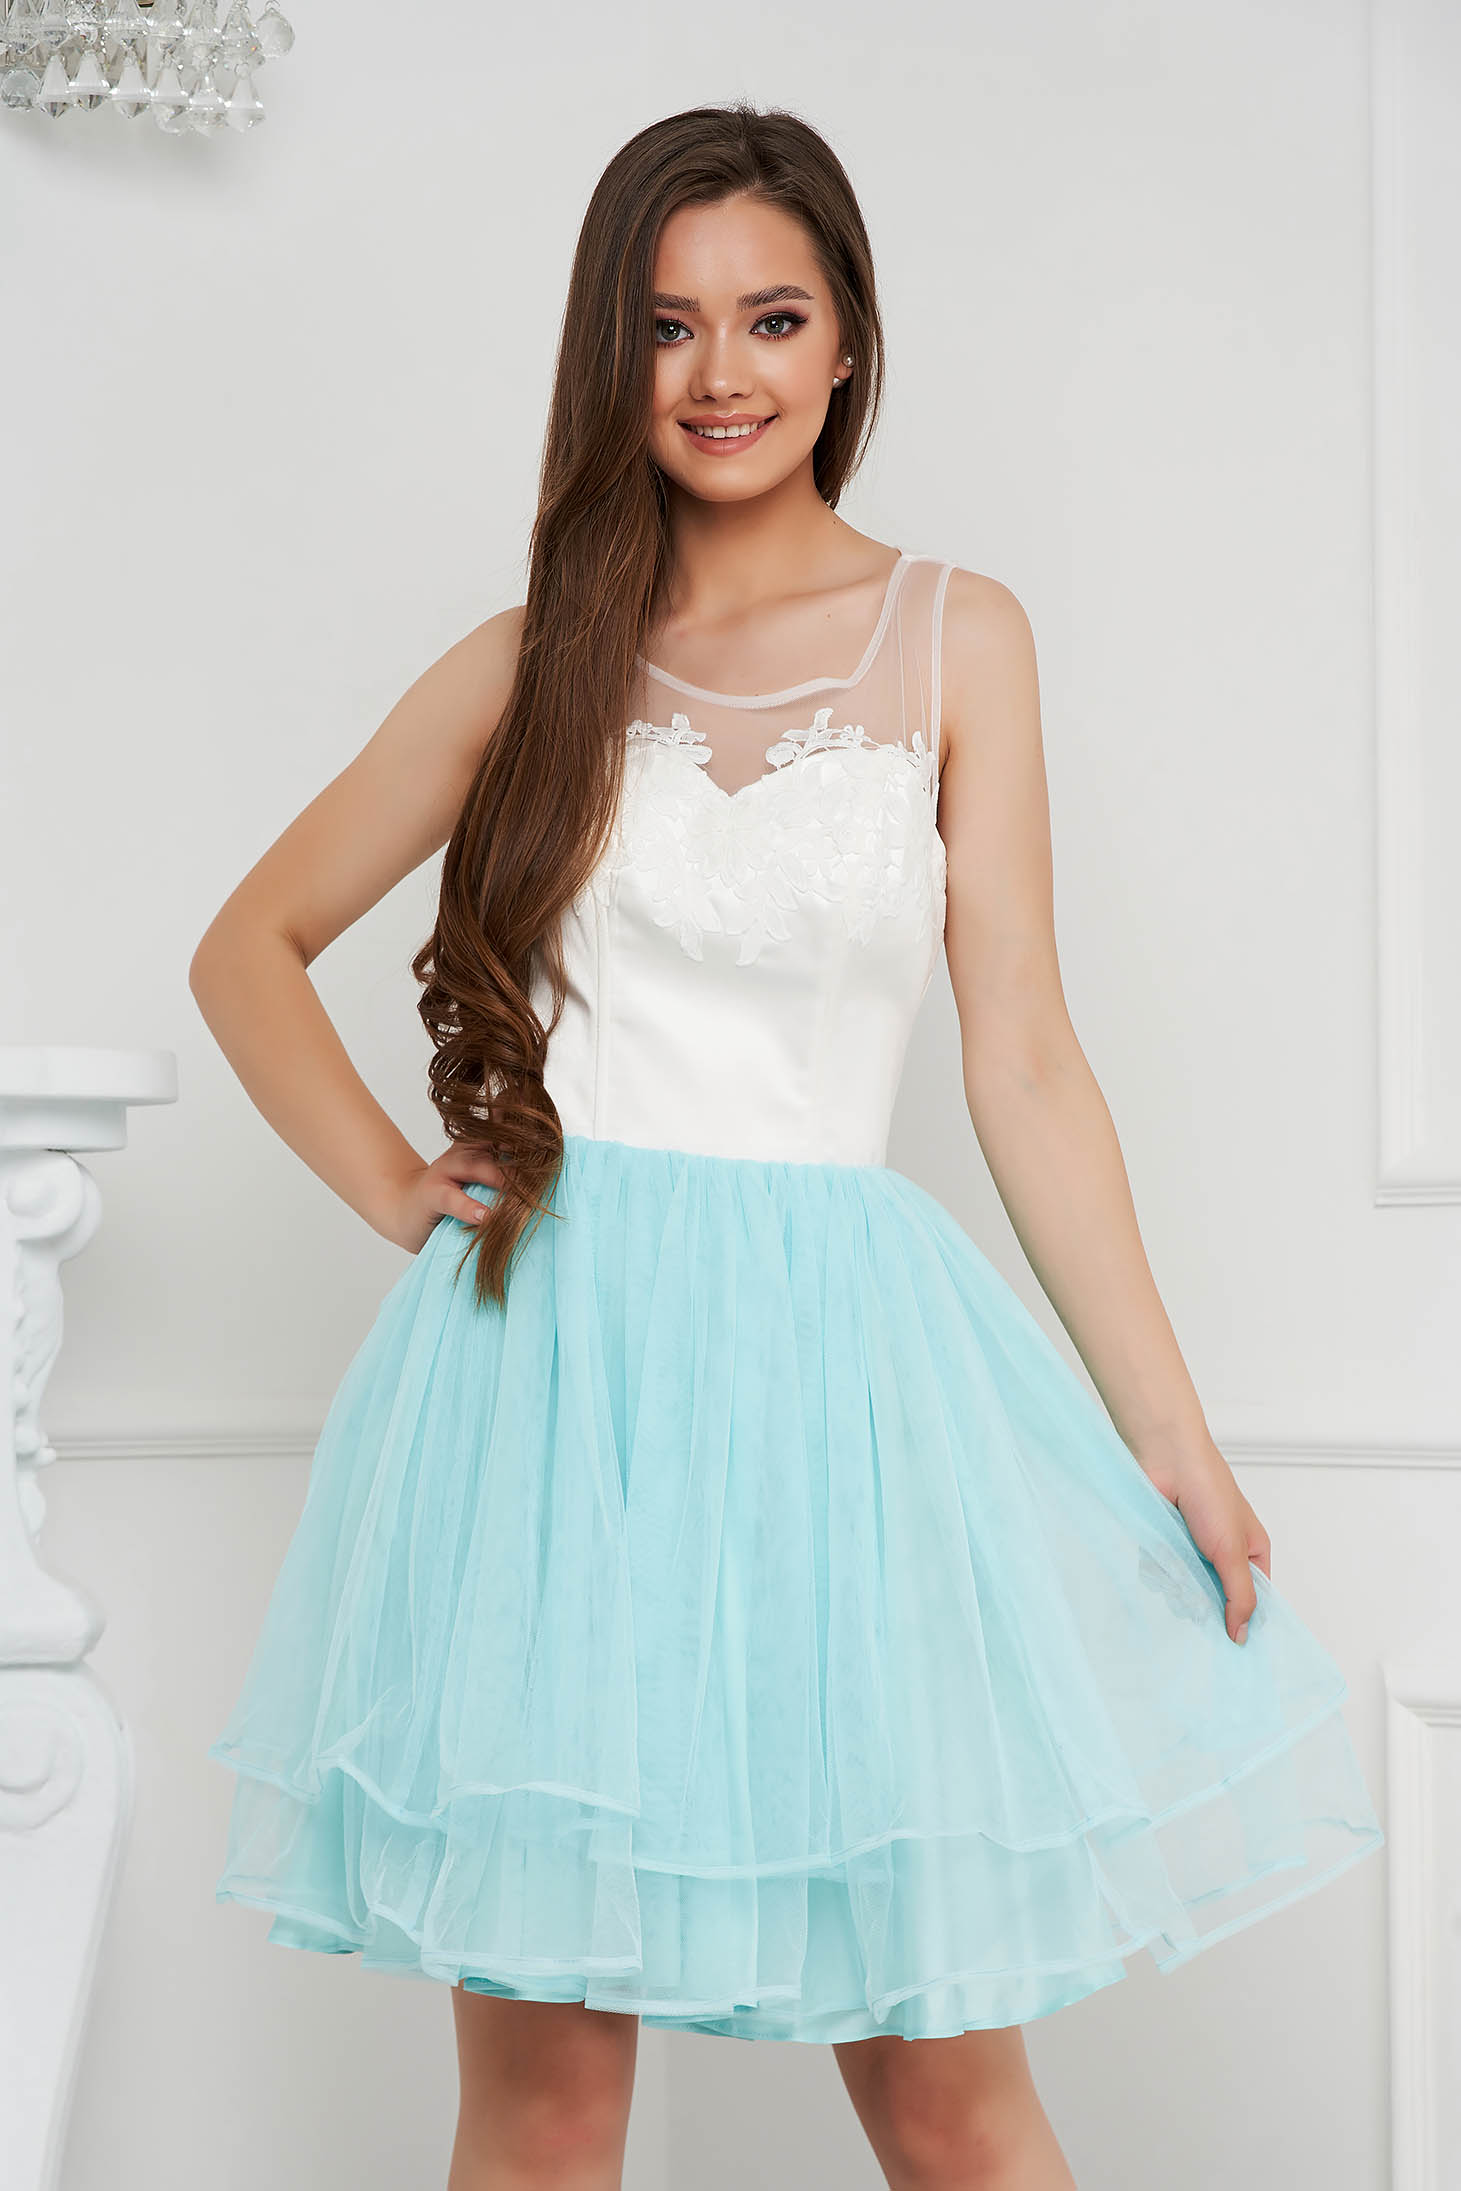 Aqua dress short cut occasional from tulle with embroidery details